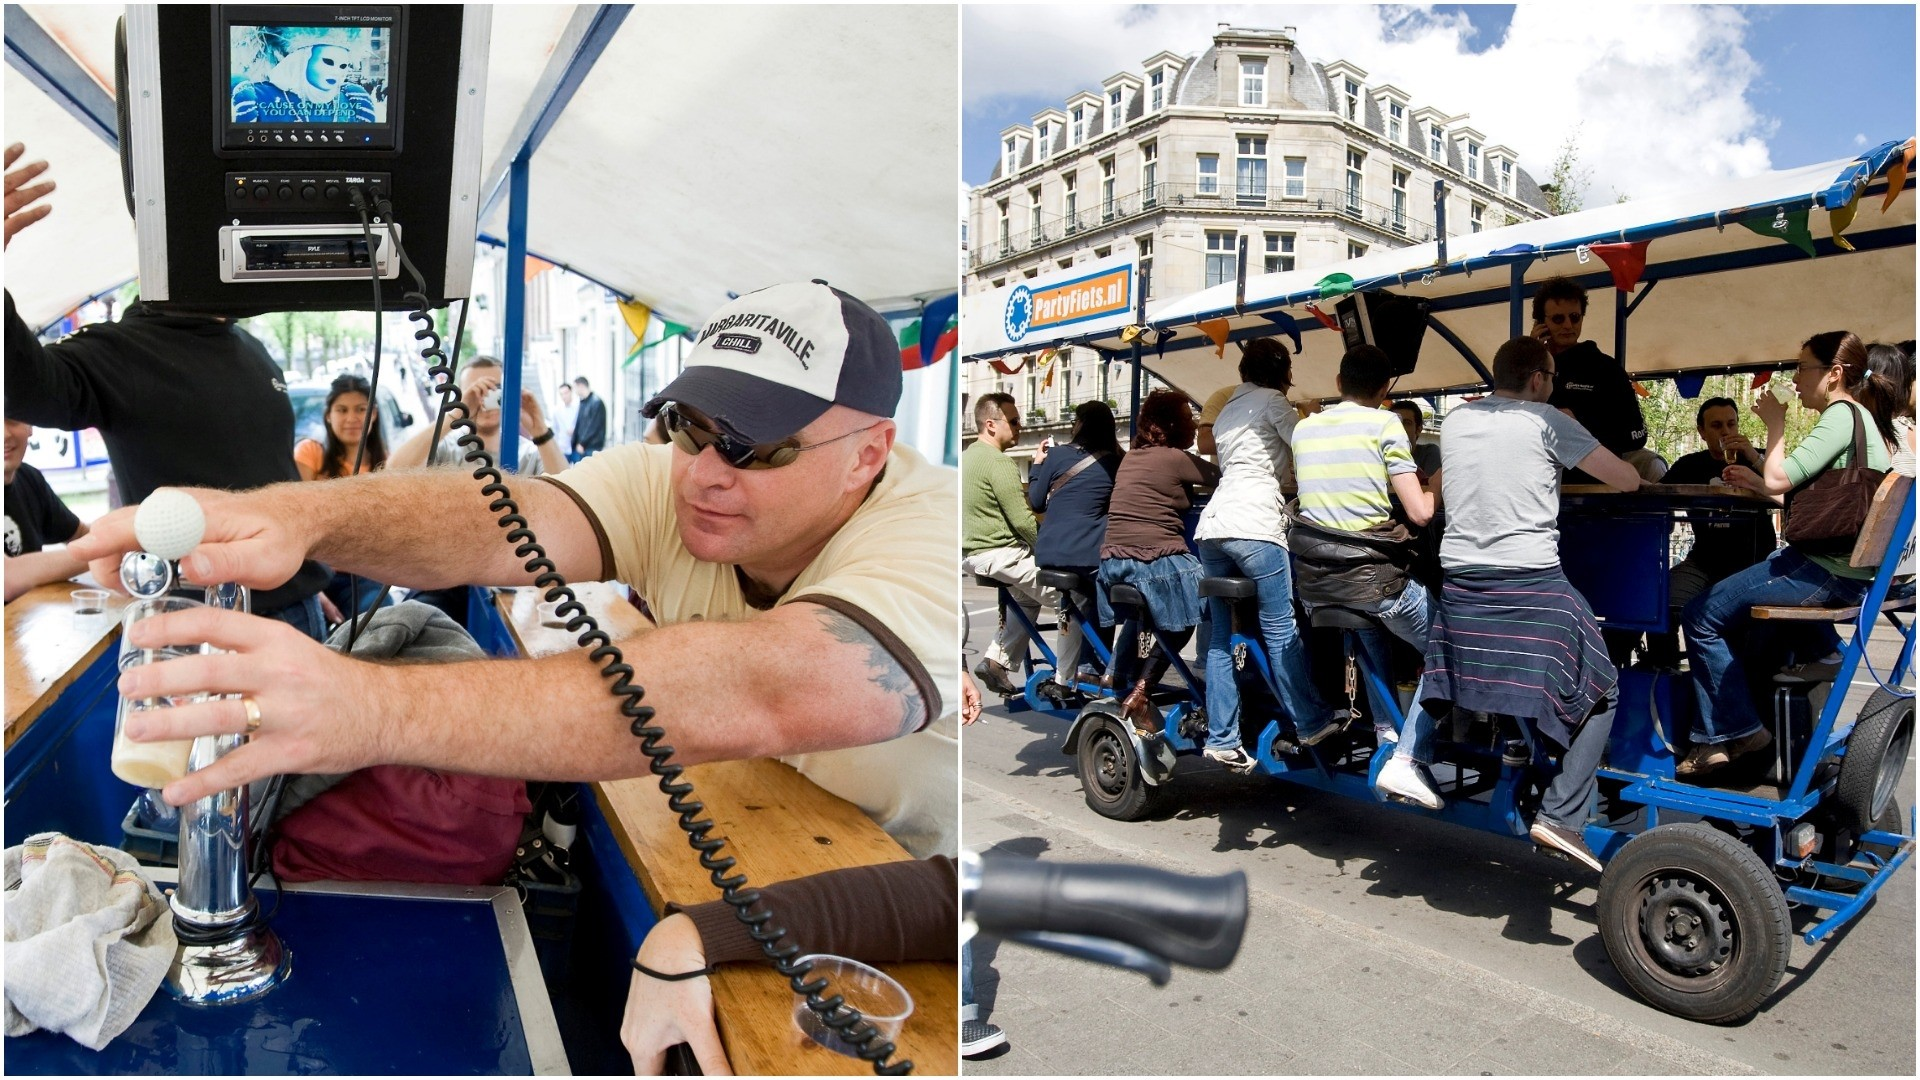 Tourists cycle as they drink beer and sing karaoke on a beer bike in Amsterdam June 12, 2009. (REUTERS Photos)